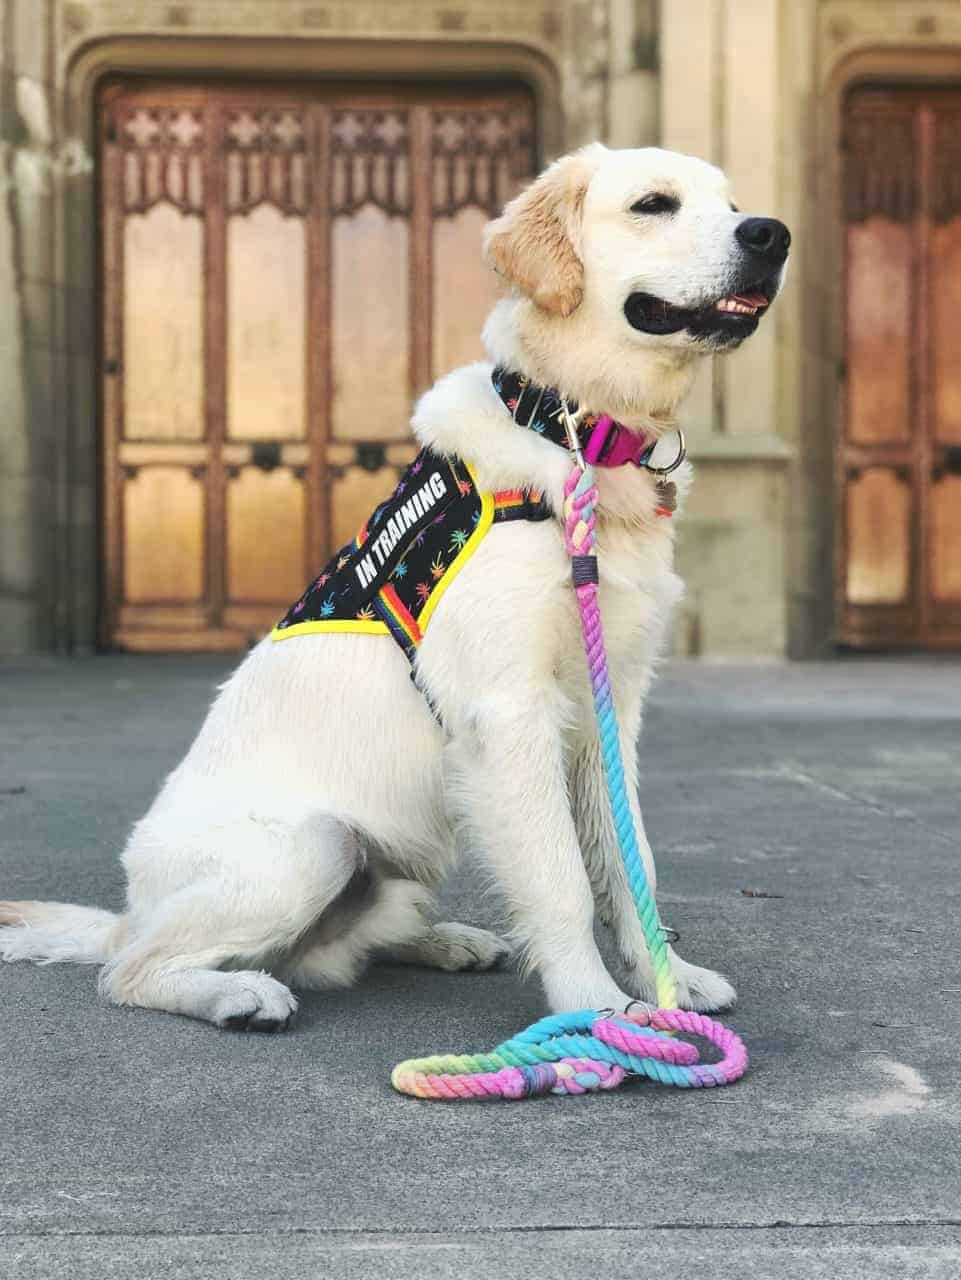 English Creme Golden Retriever wearing a rainbow service dog vest and leash in front of an old wooden door.